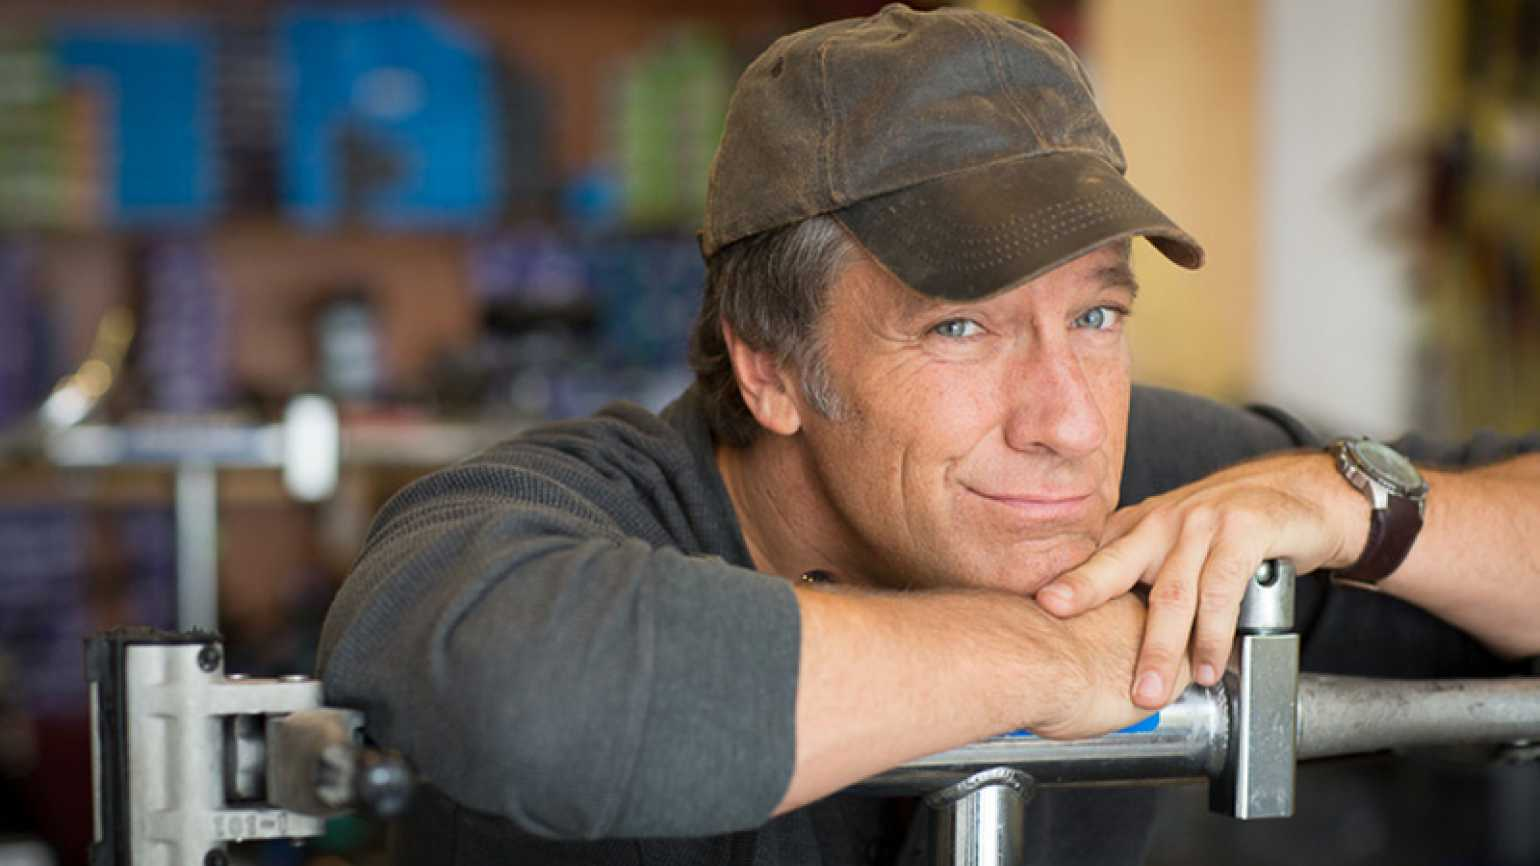 Mike Rowe Uses the Tools God Gave Him